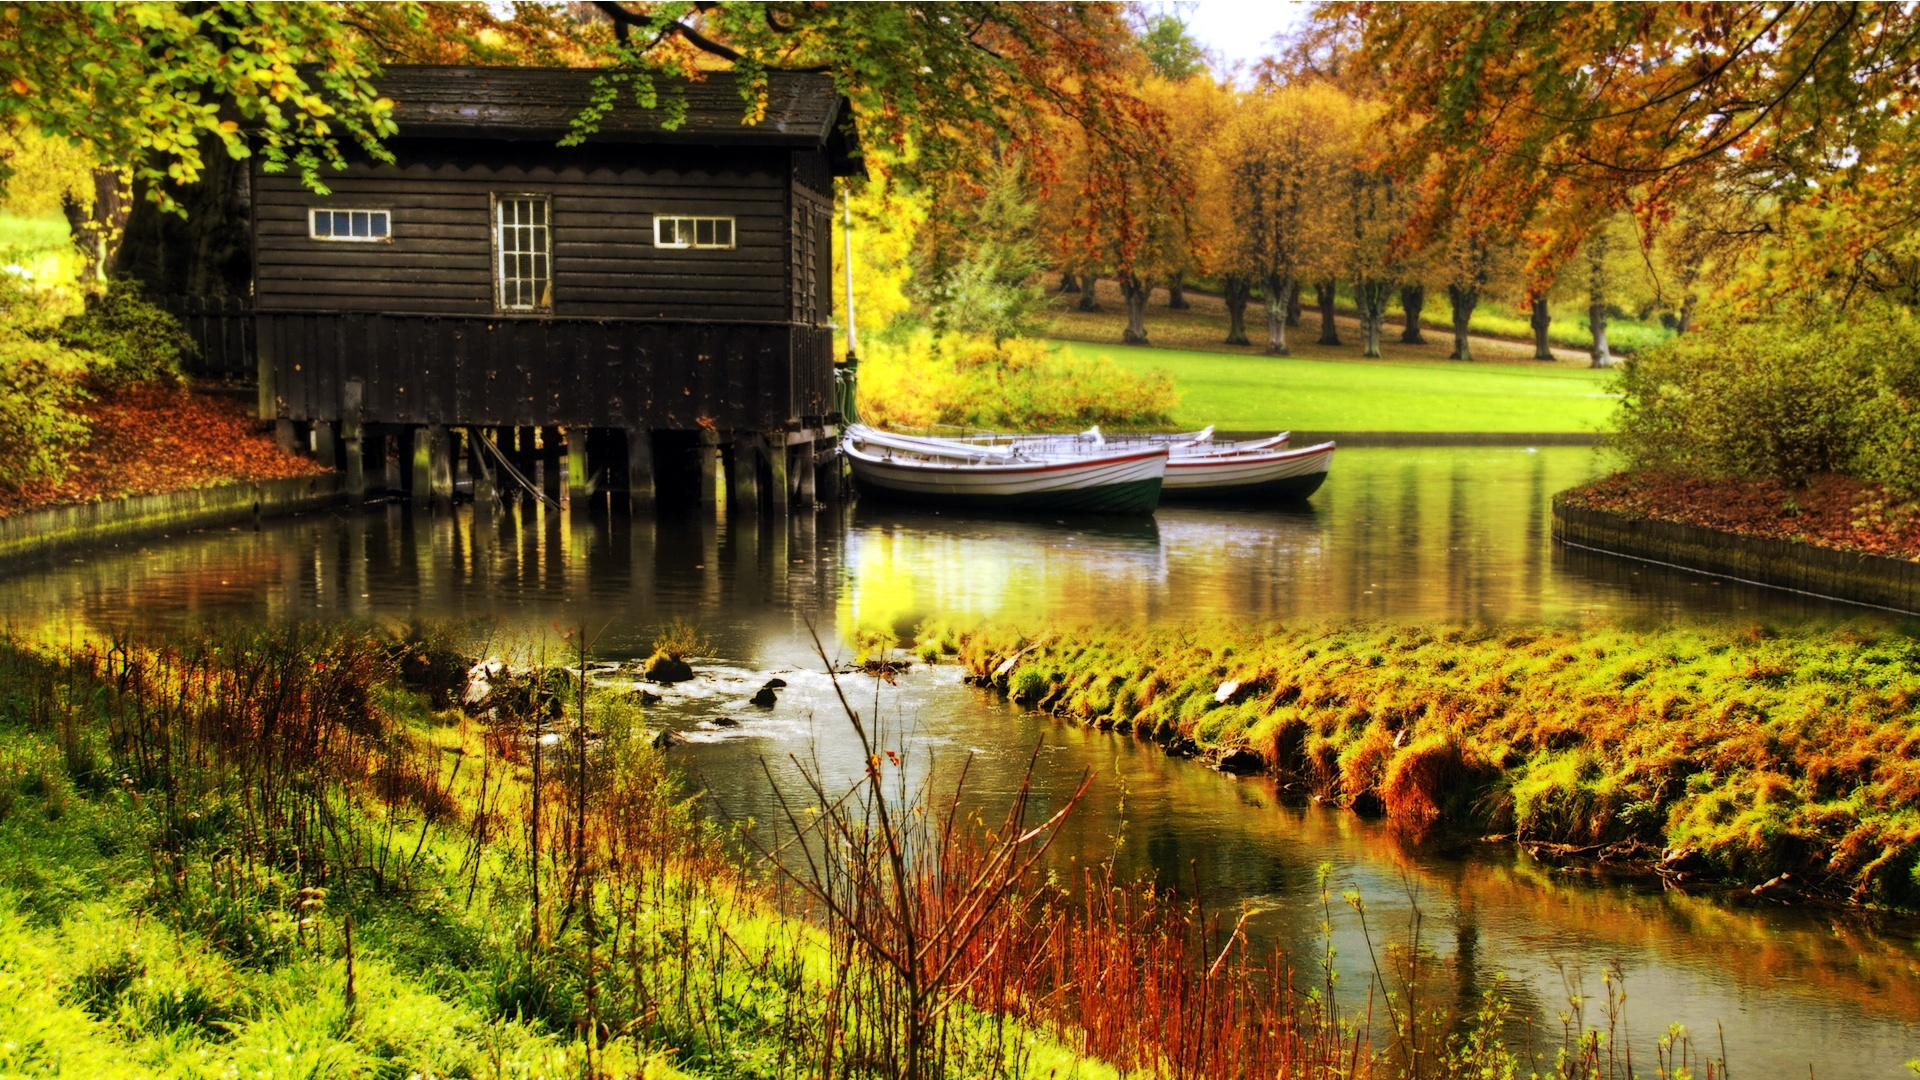 autumn cabin wallpaper desktop - photo #18